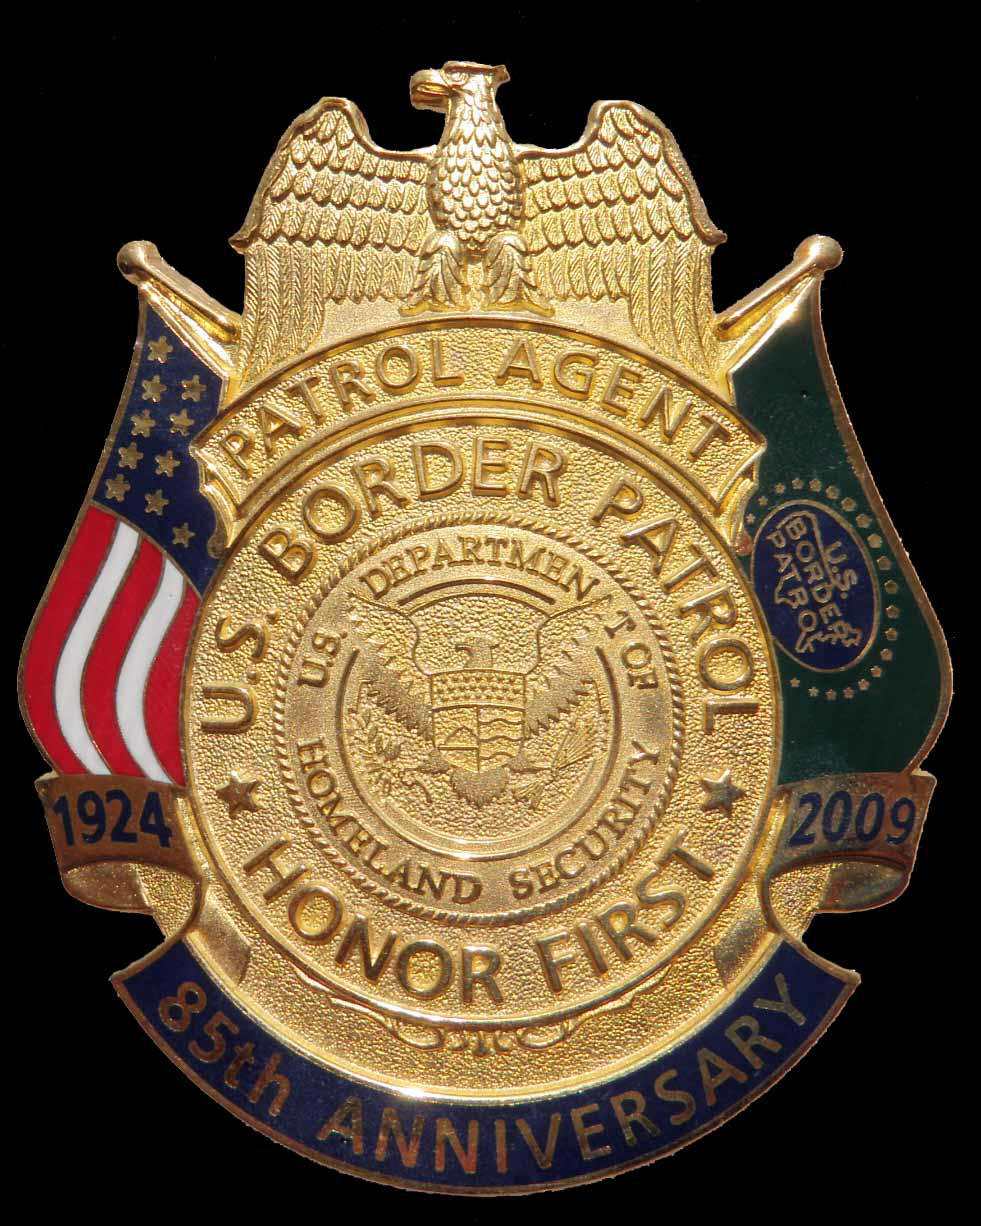 USBP 85th Anniversary Badge